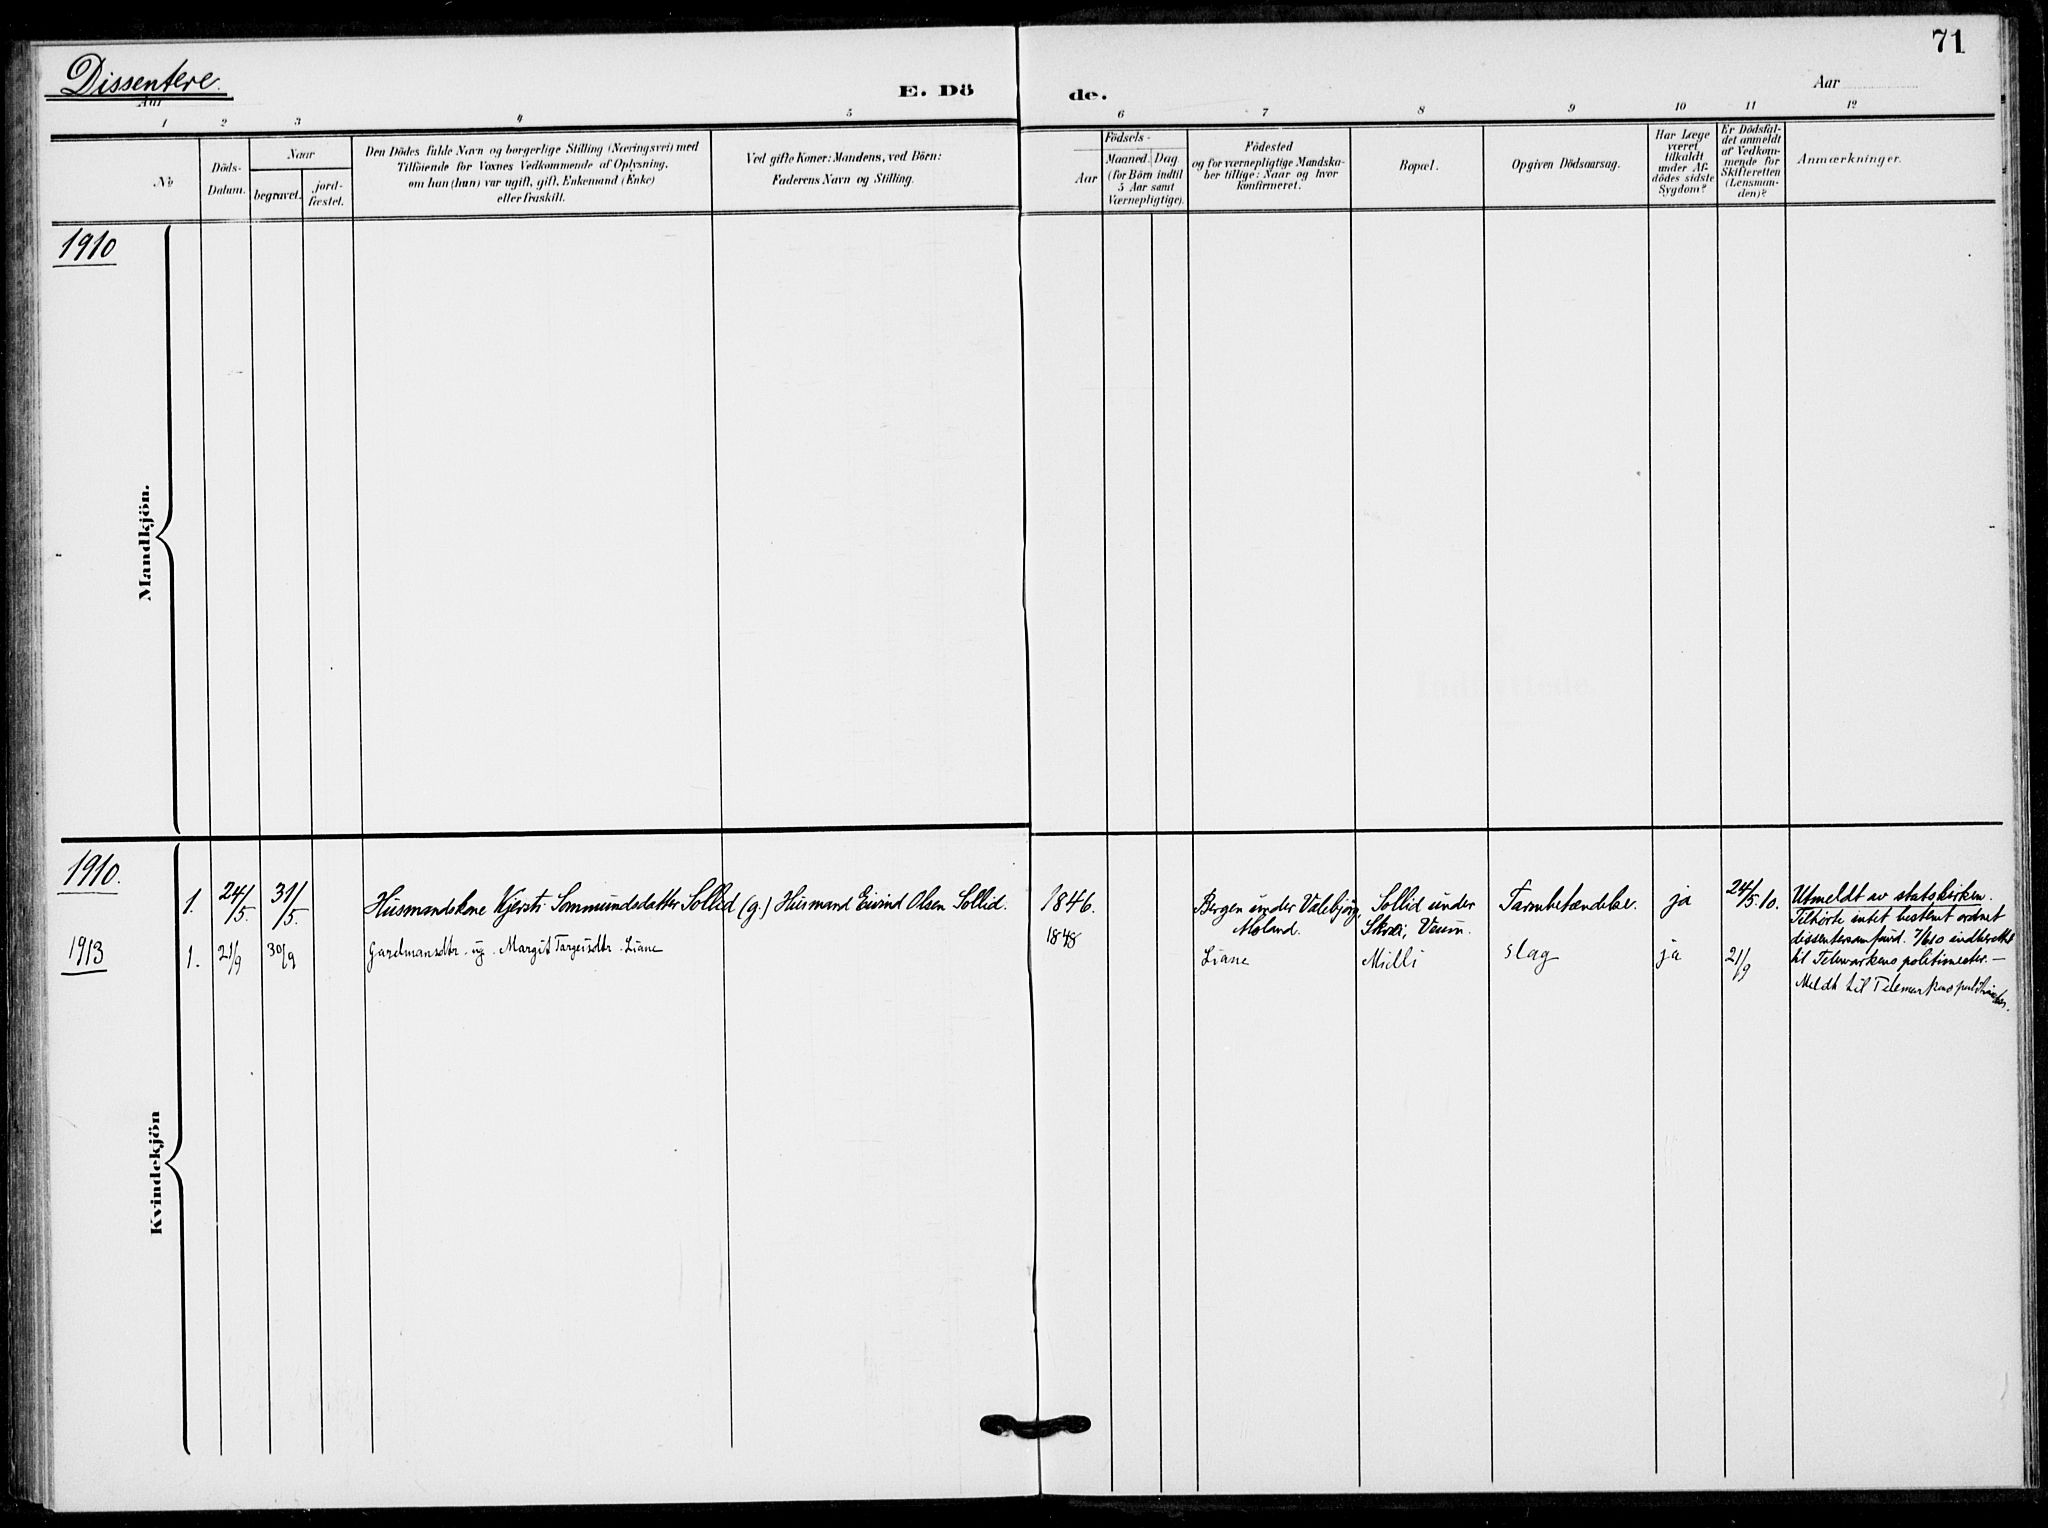 SAKO, Fyresdal kirkebøker, F/Fb/L0004: Parish register (official) no. II 4, 1903-1920, p. 71